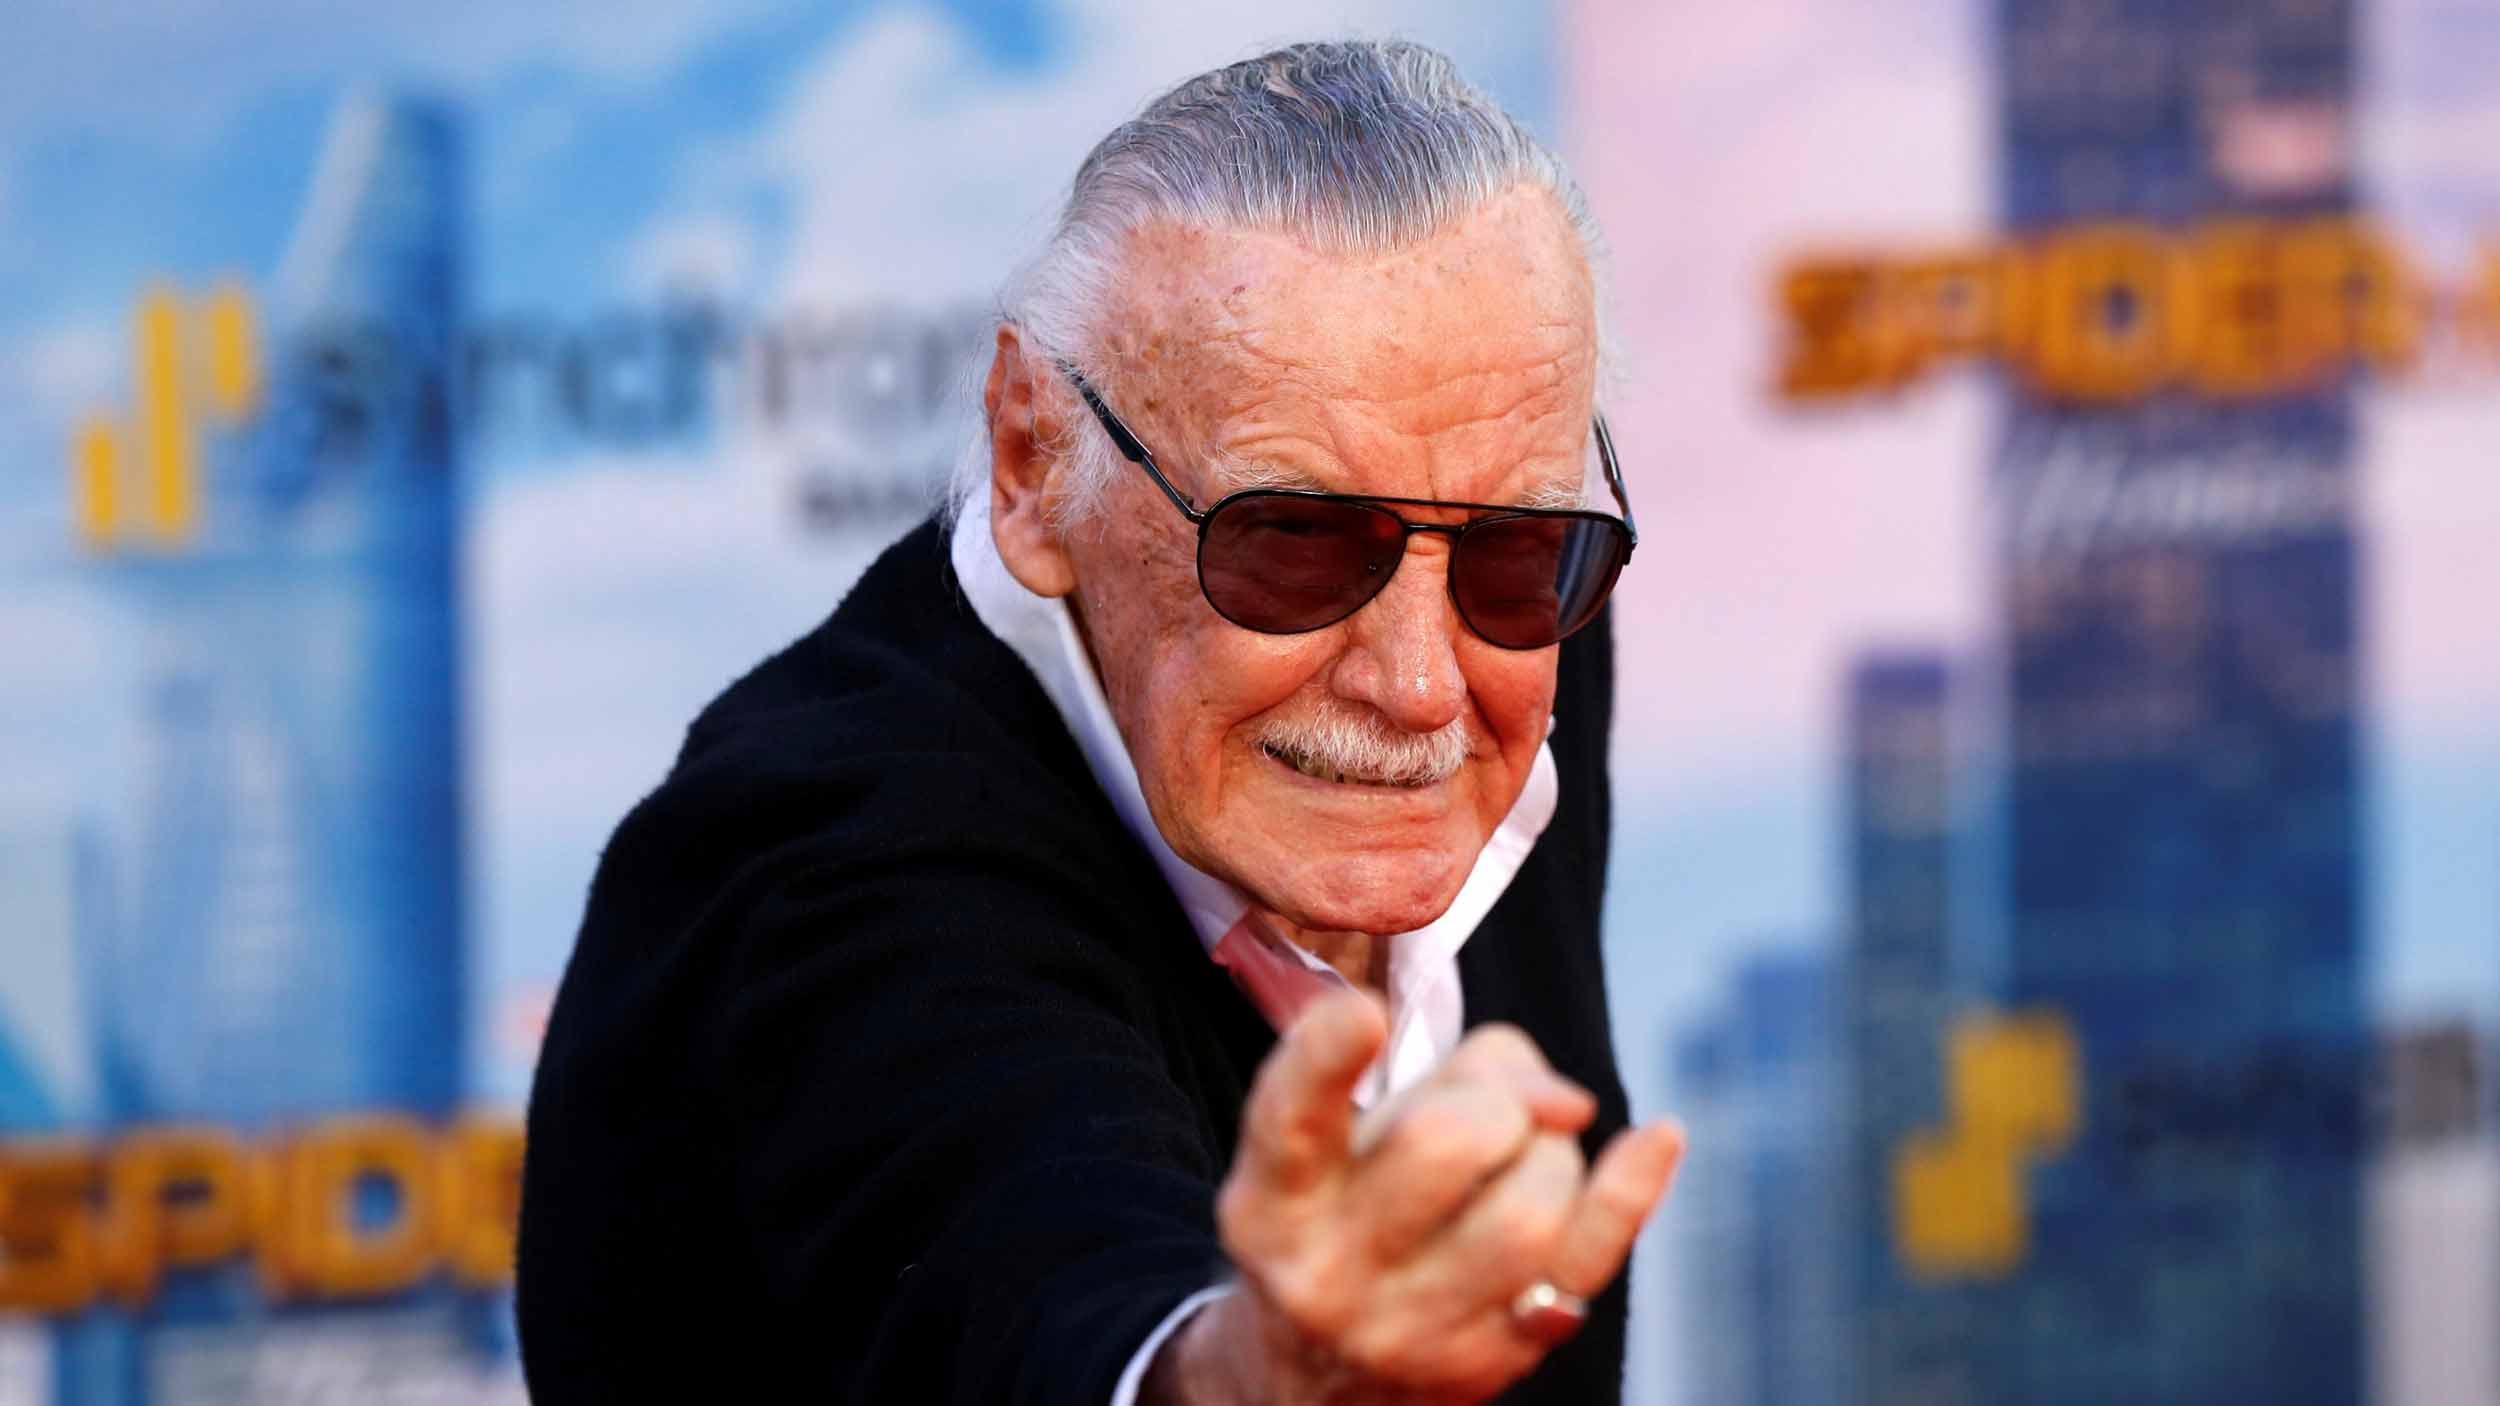 Stan Lee poses like Spiderman shooting a web from his wrist